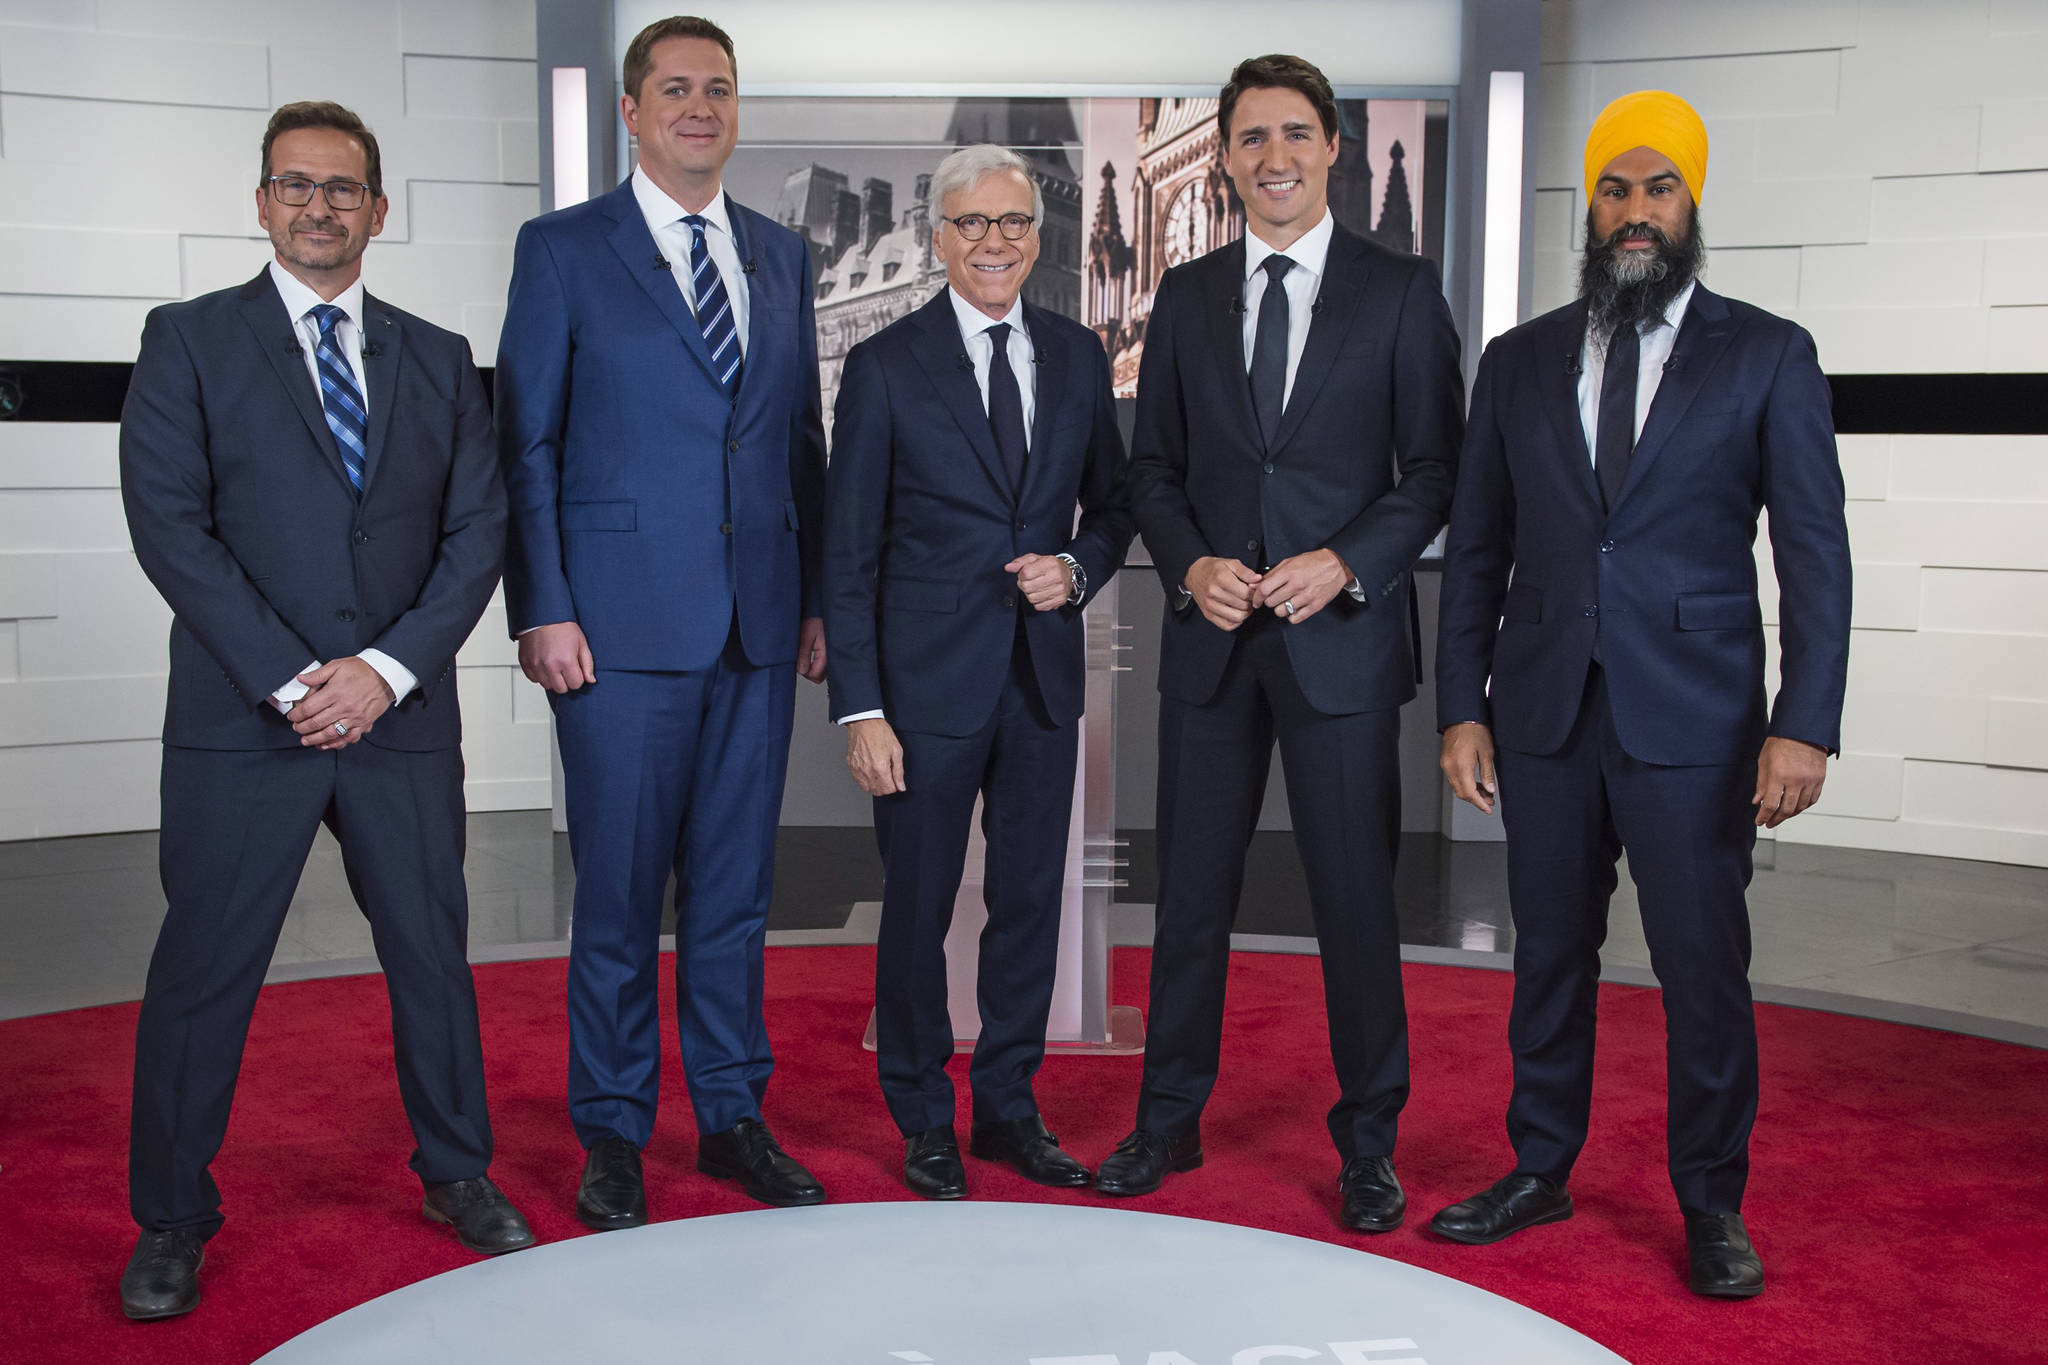 Leader of the Bloc Quebecois Yves-Francois Blanchet, left to right, Conservative Leader Andrew Scheer, TVA host Pierre Bruneau, Liberal Leader Justin Trudeau and NDP Leader Jagmeet Singh pose for a photo at the TVA french debate for the 2019 federal election, in Montreal, Wednesday, Oct. 2, 2019. (THE CANADIAN PRESS/Joel Lemay)